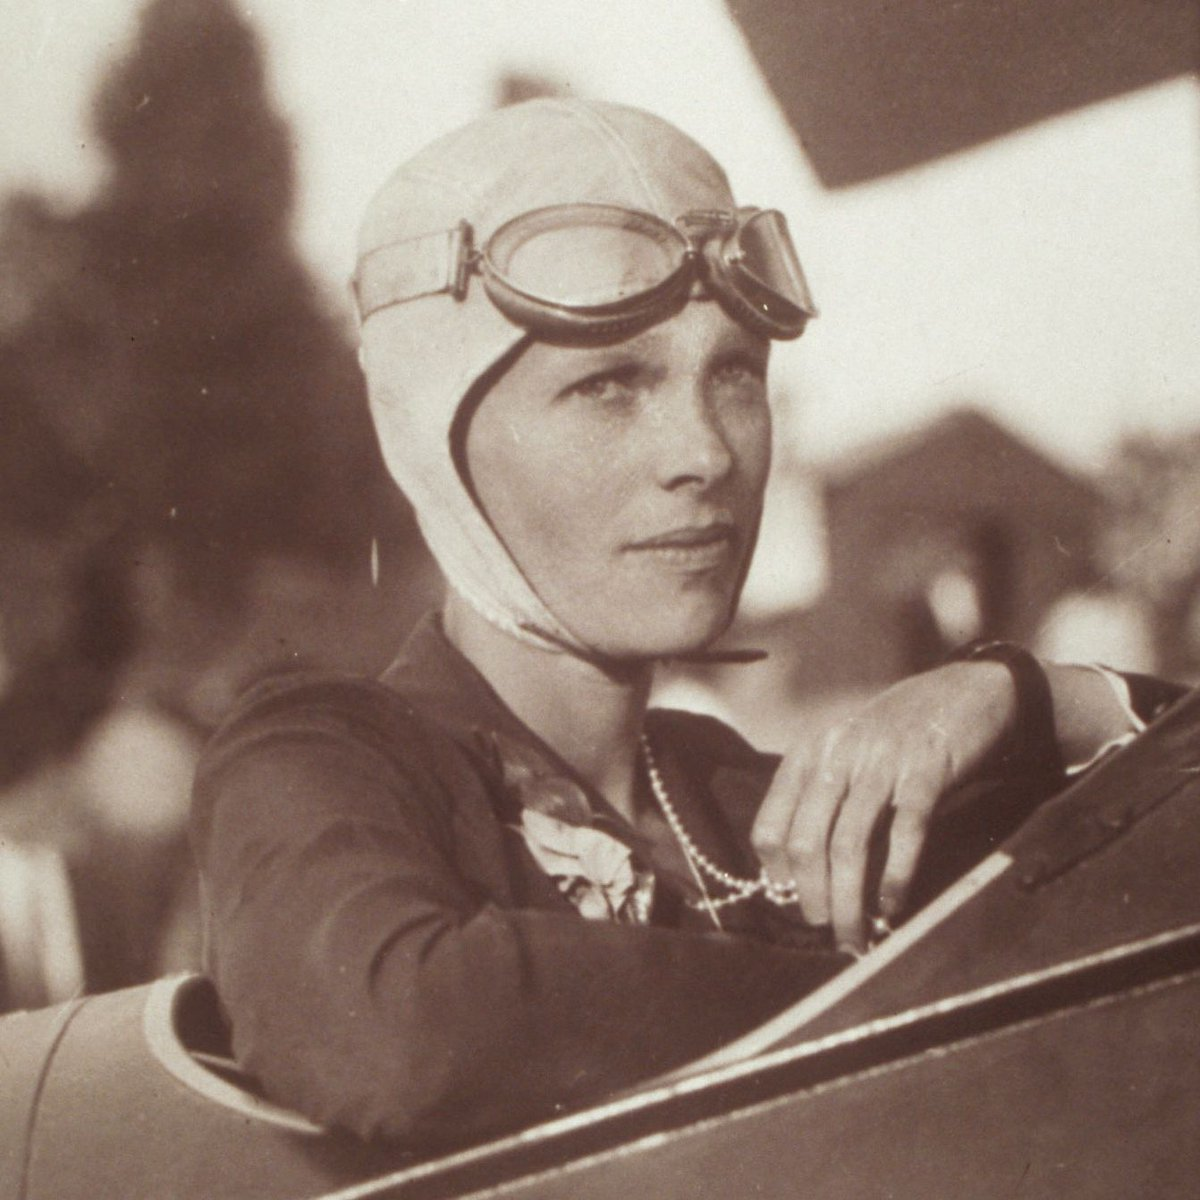 Patriarchy got you down? Do an Earhart and soar above the haters. 🛩️  Happy Birthday to Amelia Earhart, a pilot who helped pave the way for women to take to the skies.  #HappyBirthday #AmeliaEarhart #FemalePilot #Herstory #Herstorian #WomenInHistory #WomensHistory #OTD https://t.co/lyoheFJscV